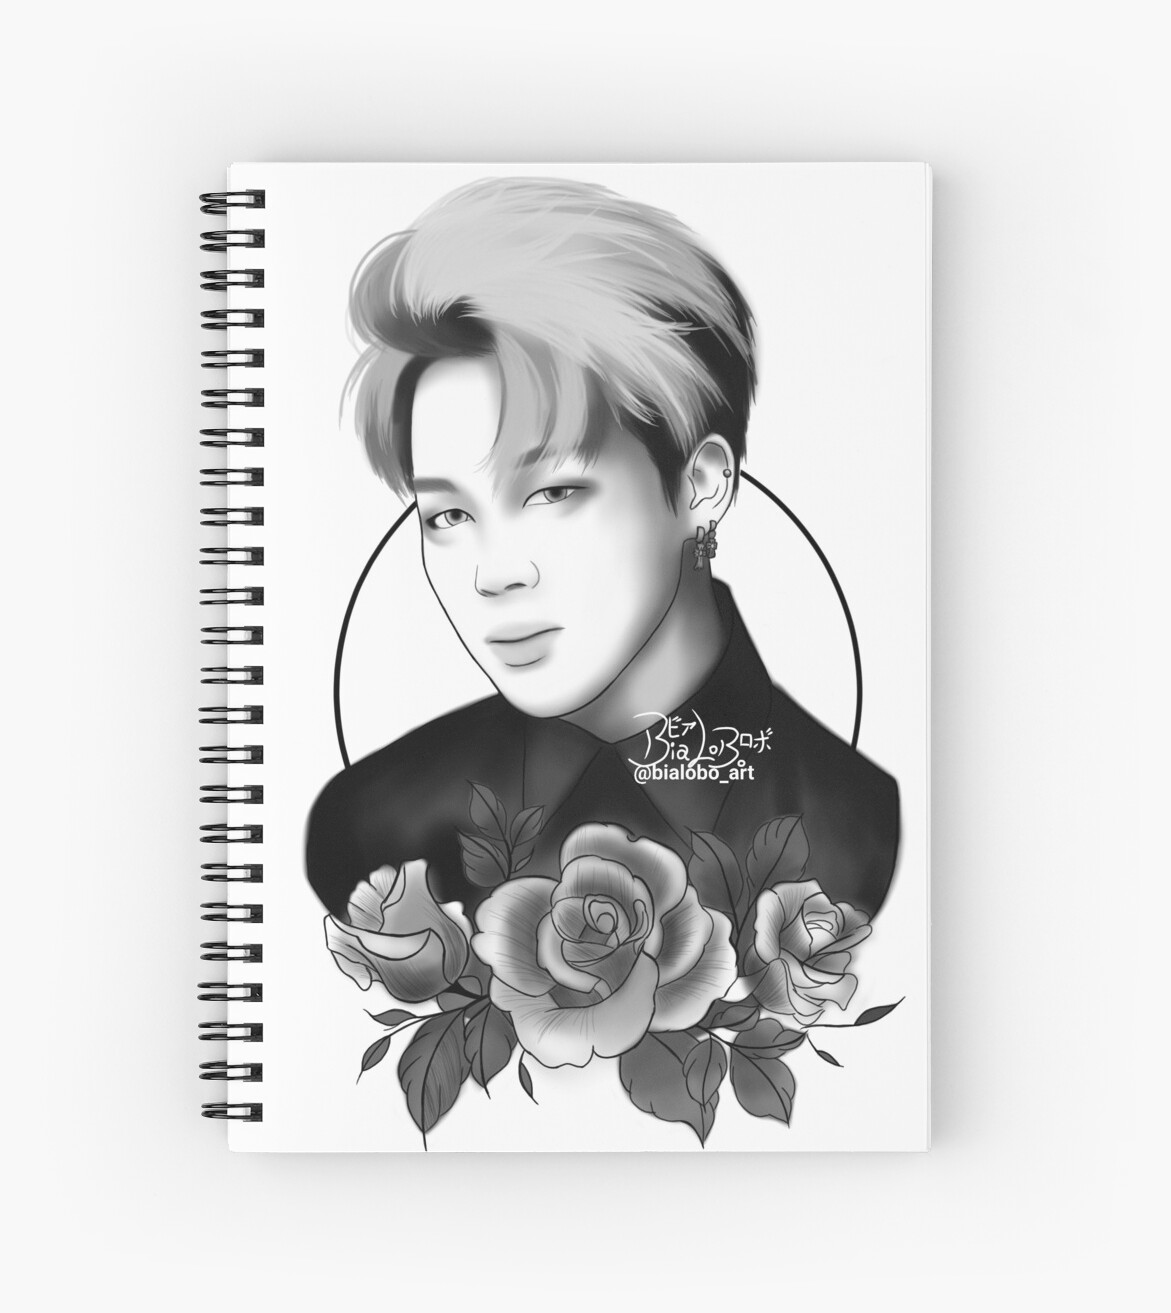 Case Ih Home Decor Quot Jimin Bts Fanart Bybialobo Quot Spiral Notebooks By